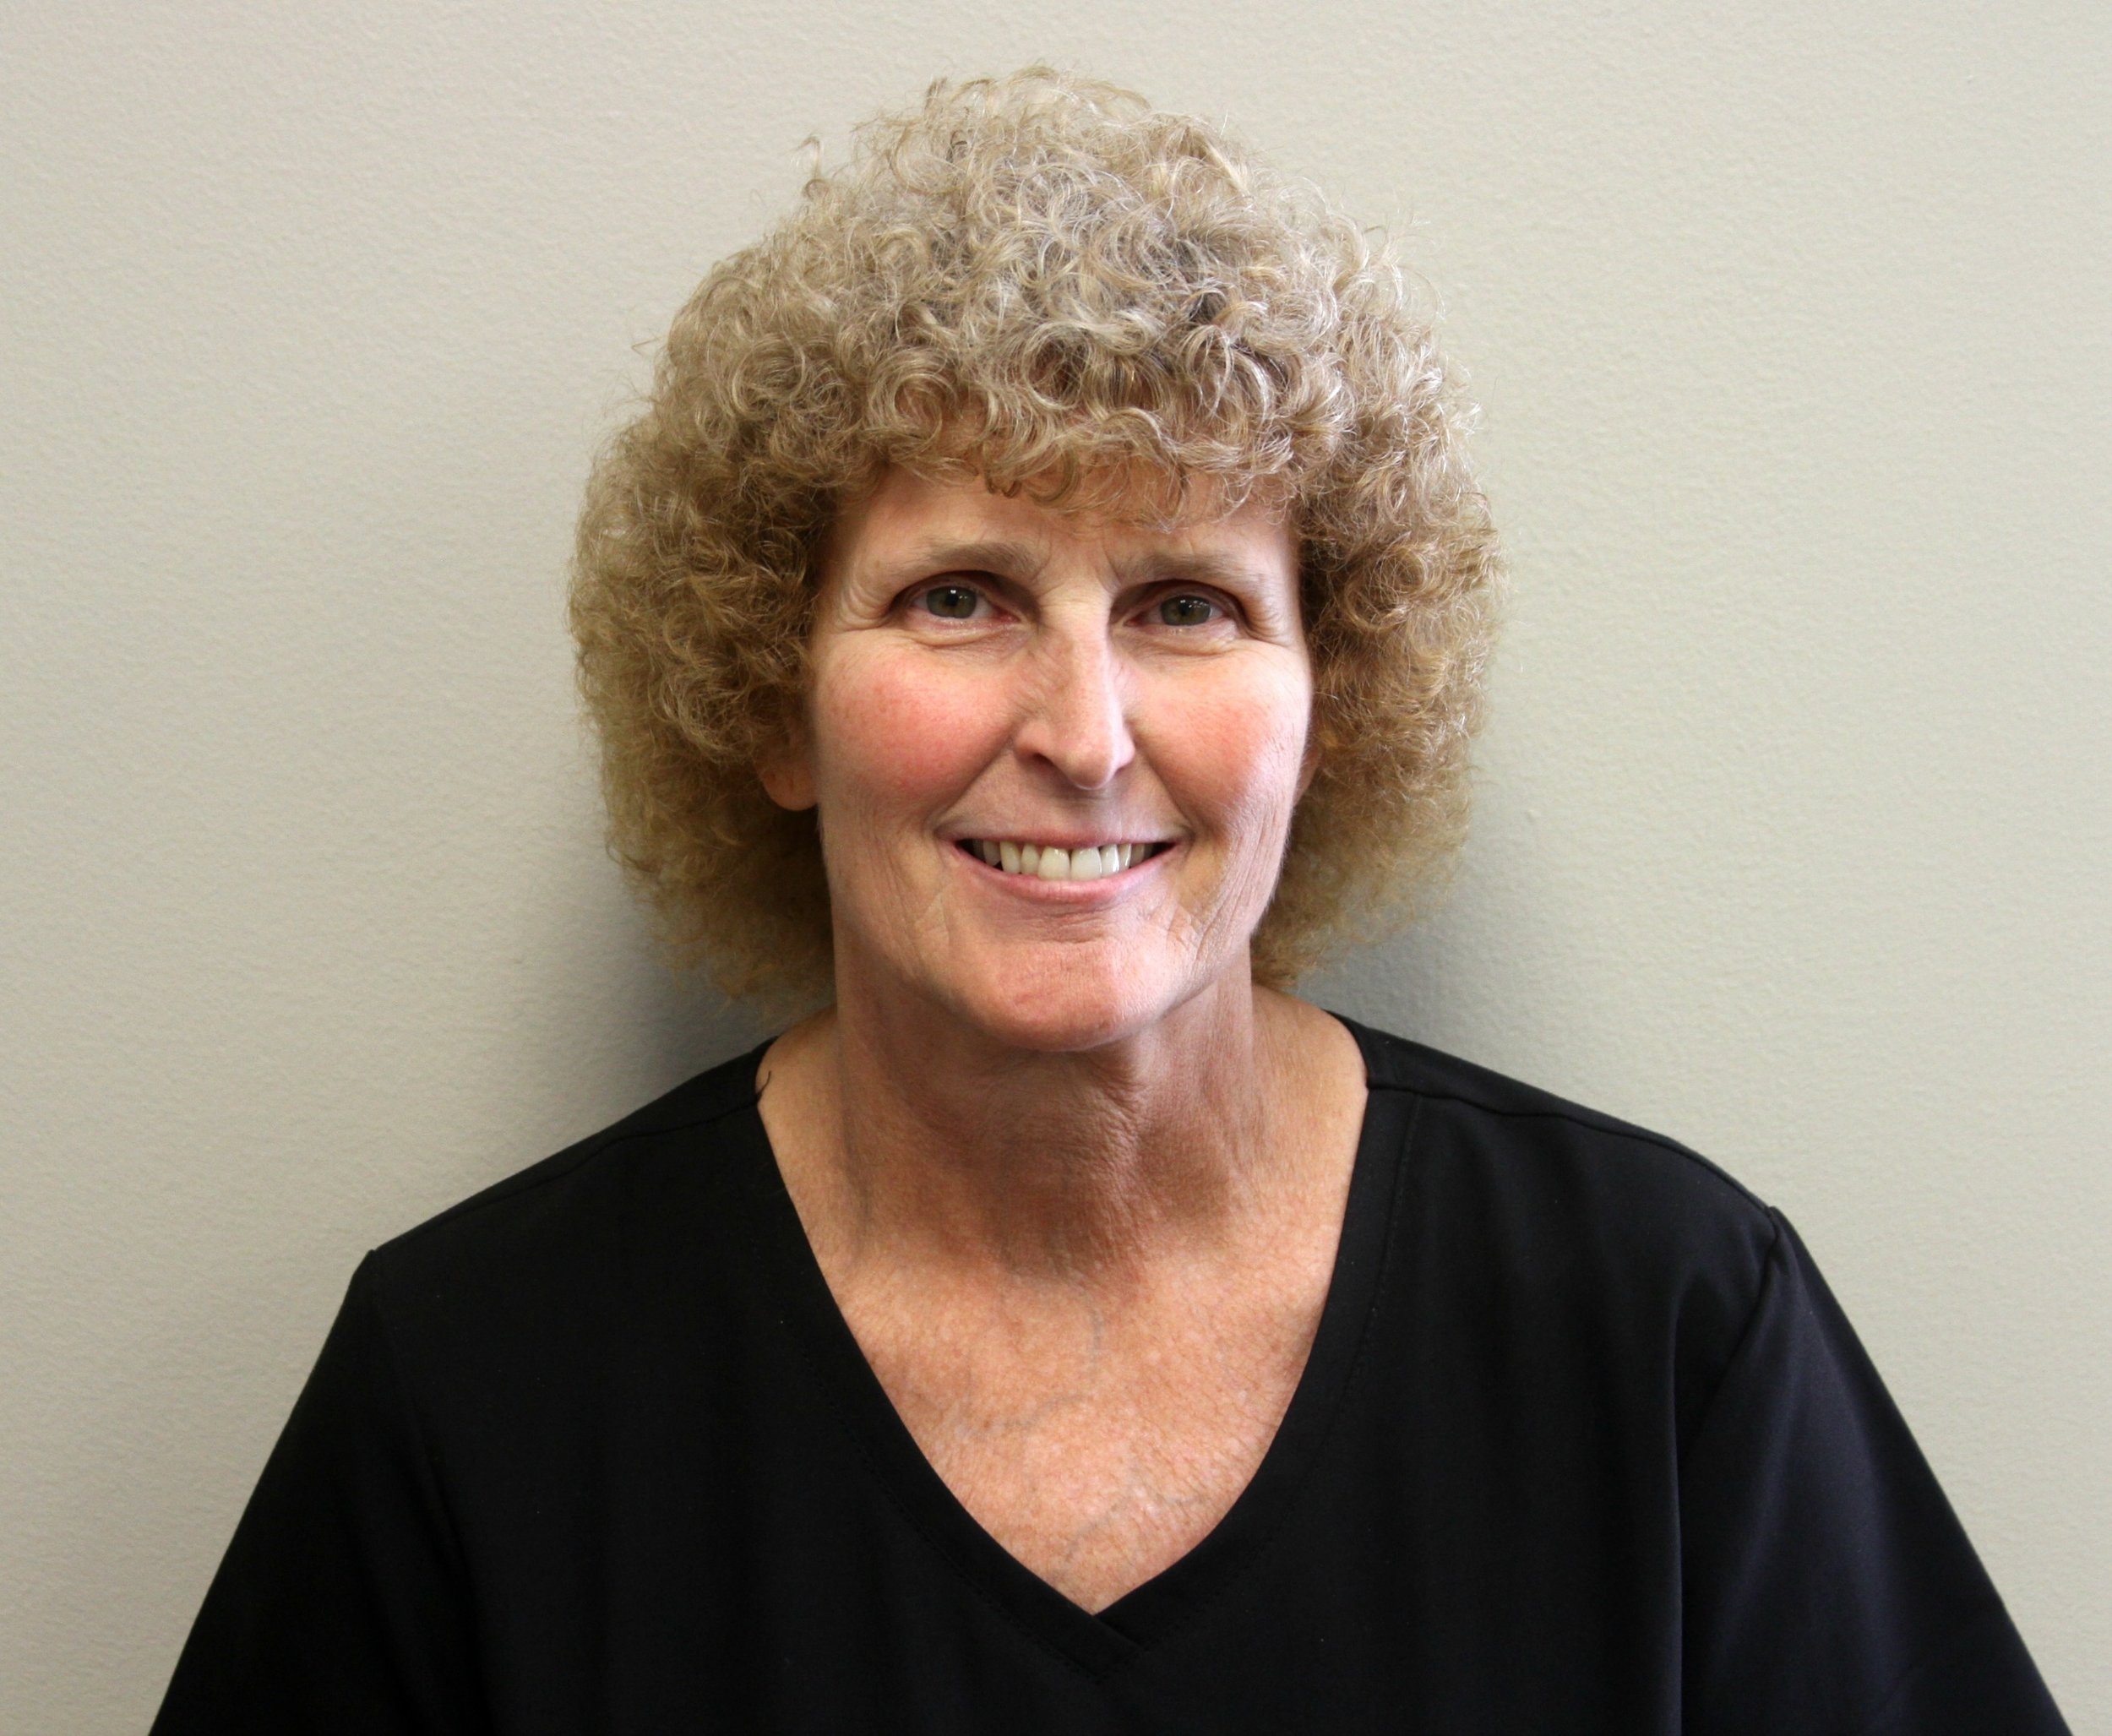 Peggy is a member of our insurance and billing team at Hunkeler Eye Institute. She has been in the insurance and billing industry for 11 years all of which have been spent with Hunkeler Eye Institute. During her free time she enjoys spending time with her family which includes her 2 daughters, 3 grandchildren, her dog and her cat. She also enjoys spending time golfing and boating.